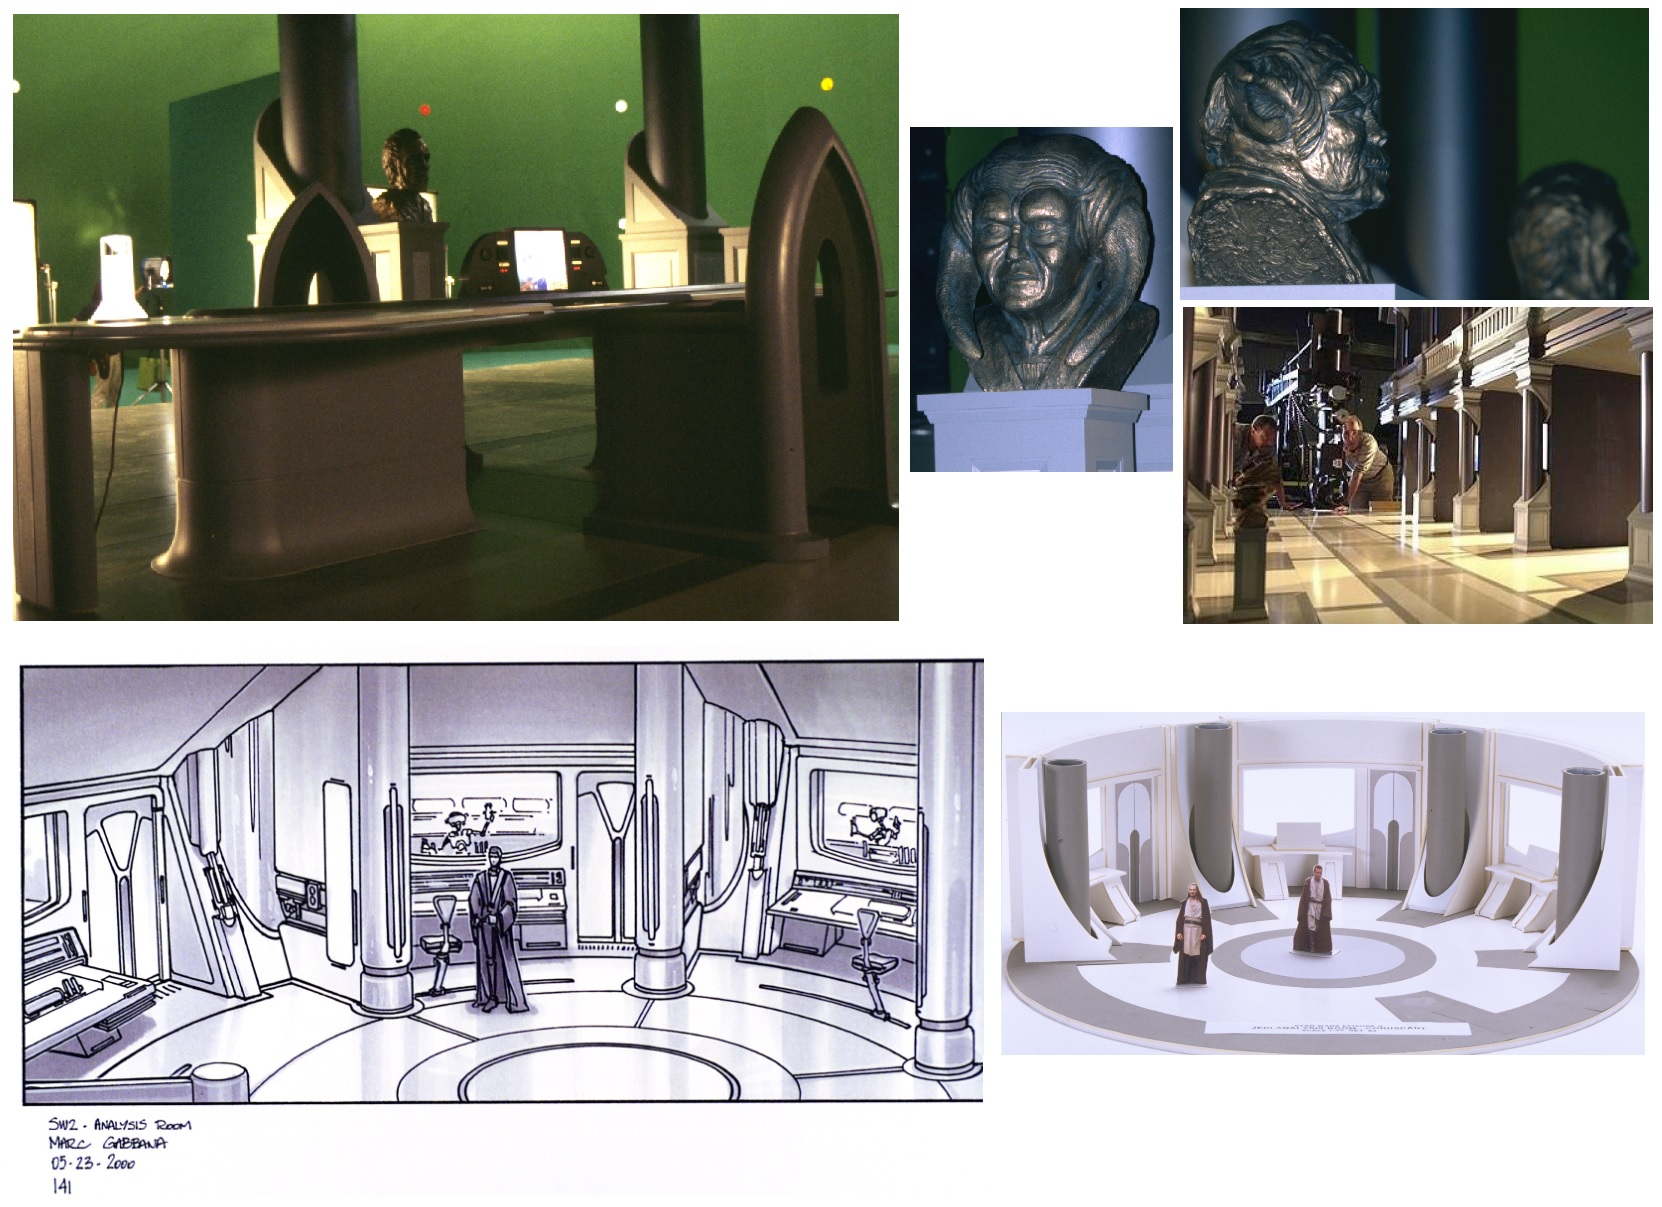 Top row: Jedi Archives. Bottom row: Analysis Room concept art & maquette